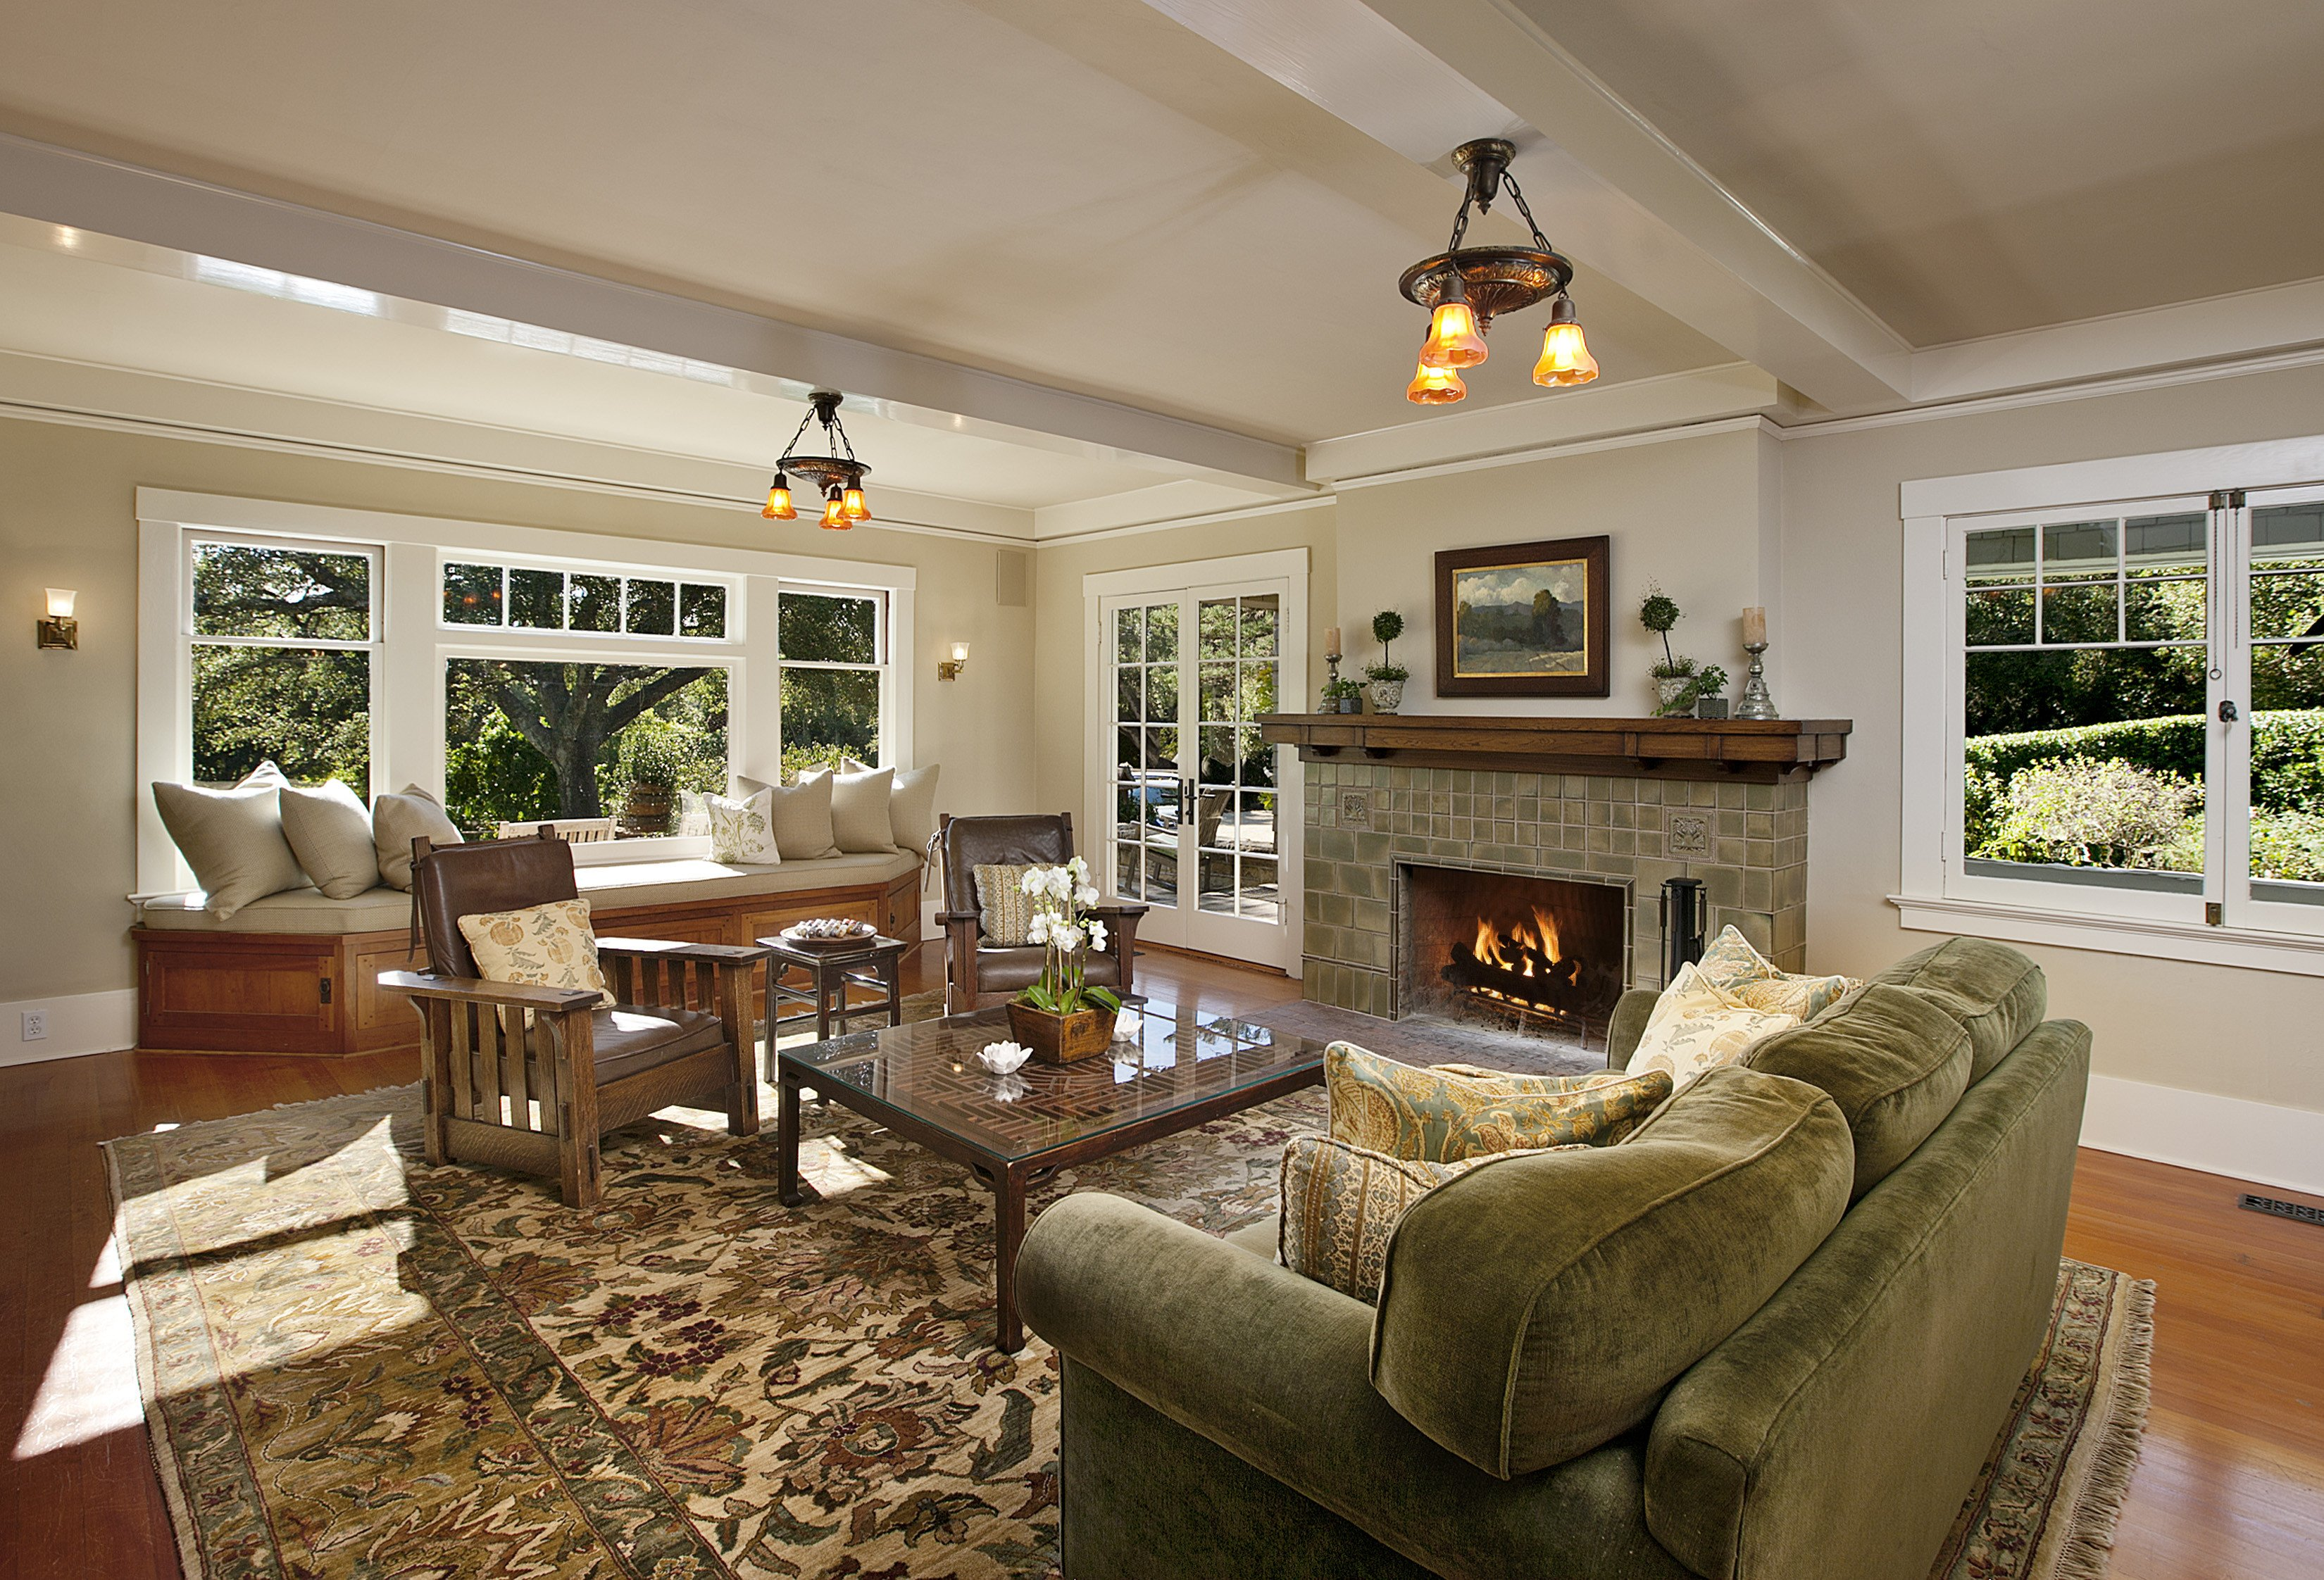 Ranch House Living Room Decorating Ideas Popular Home Styles for 2012